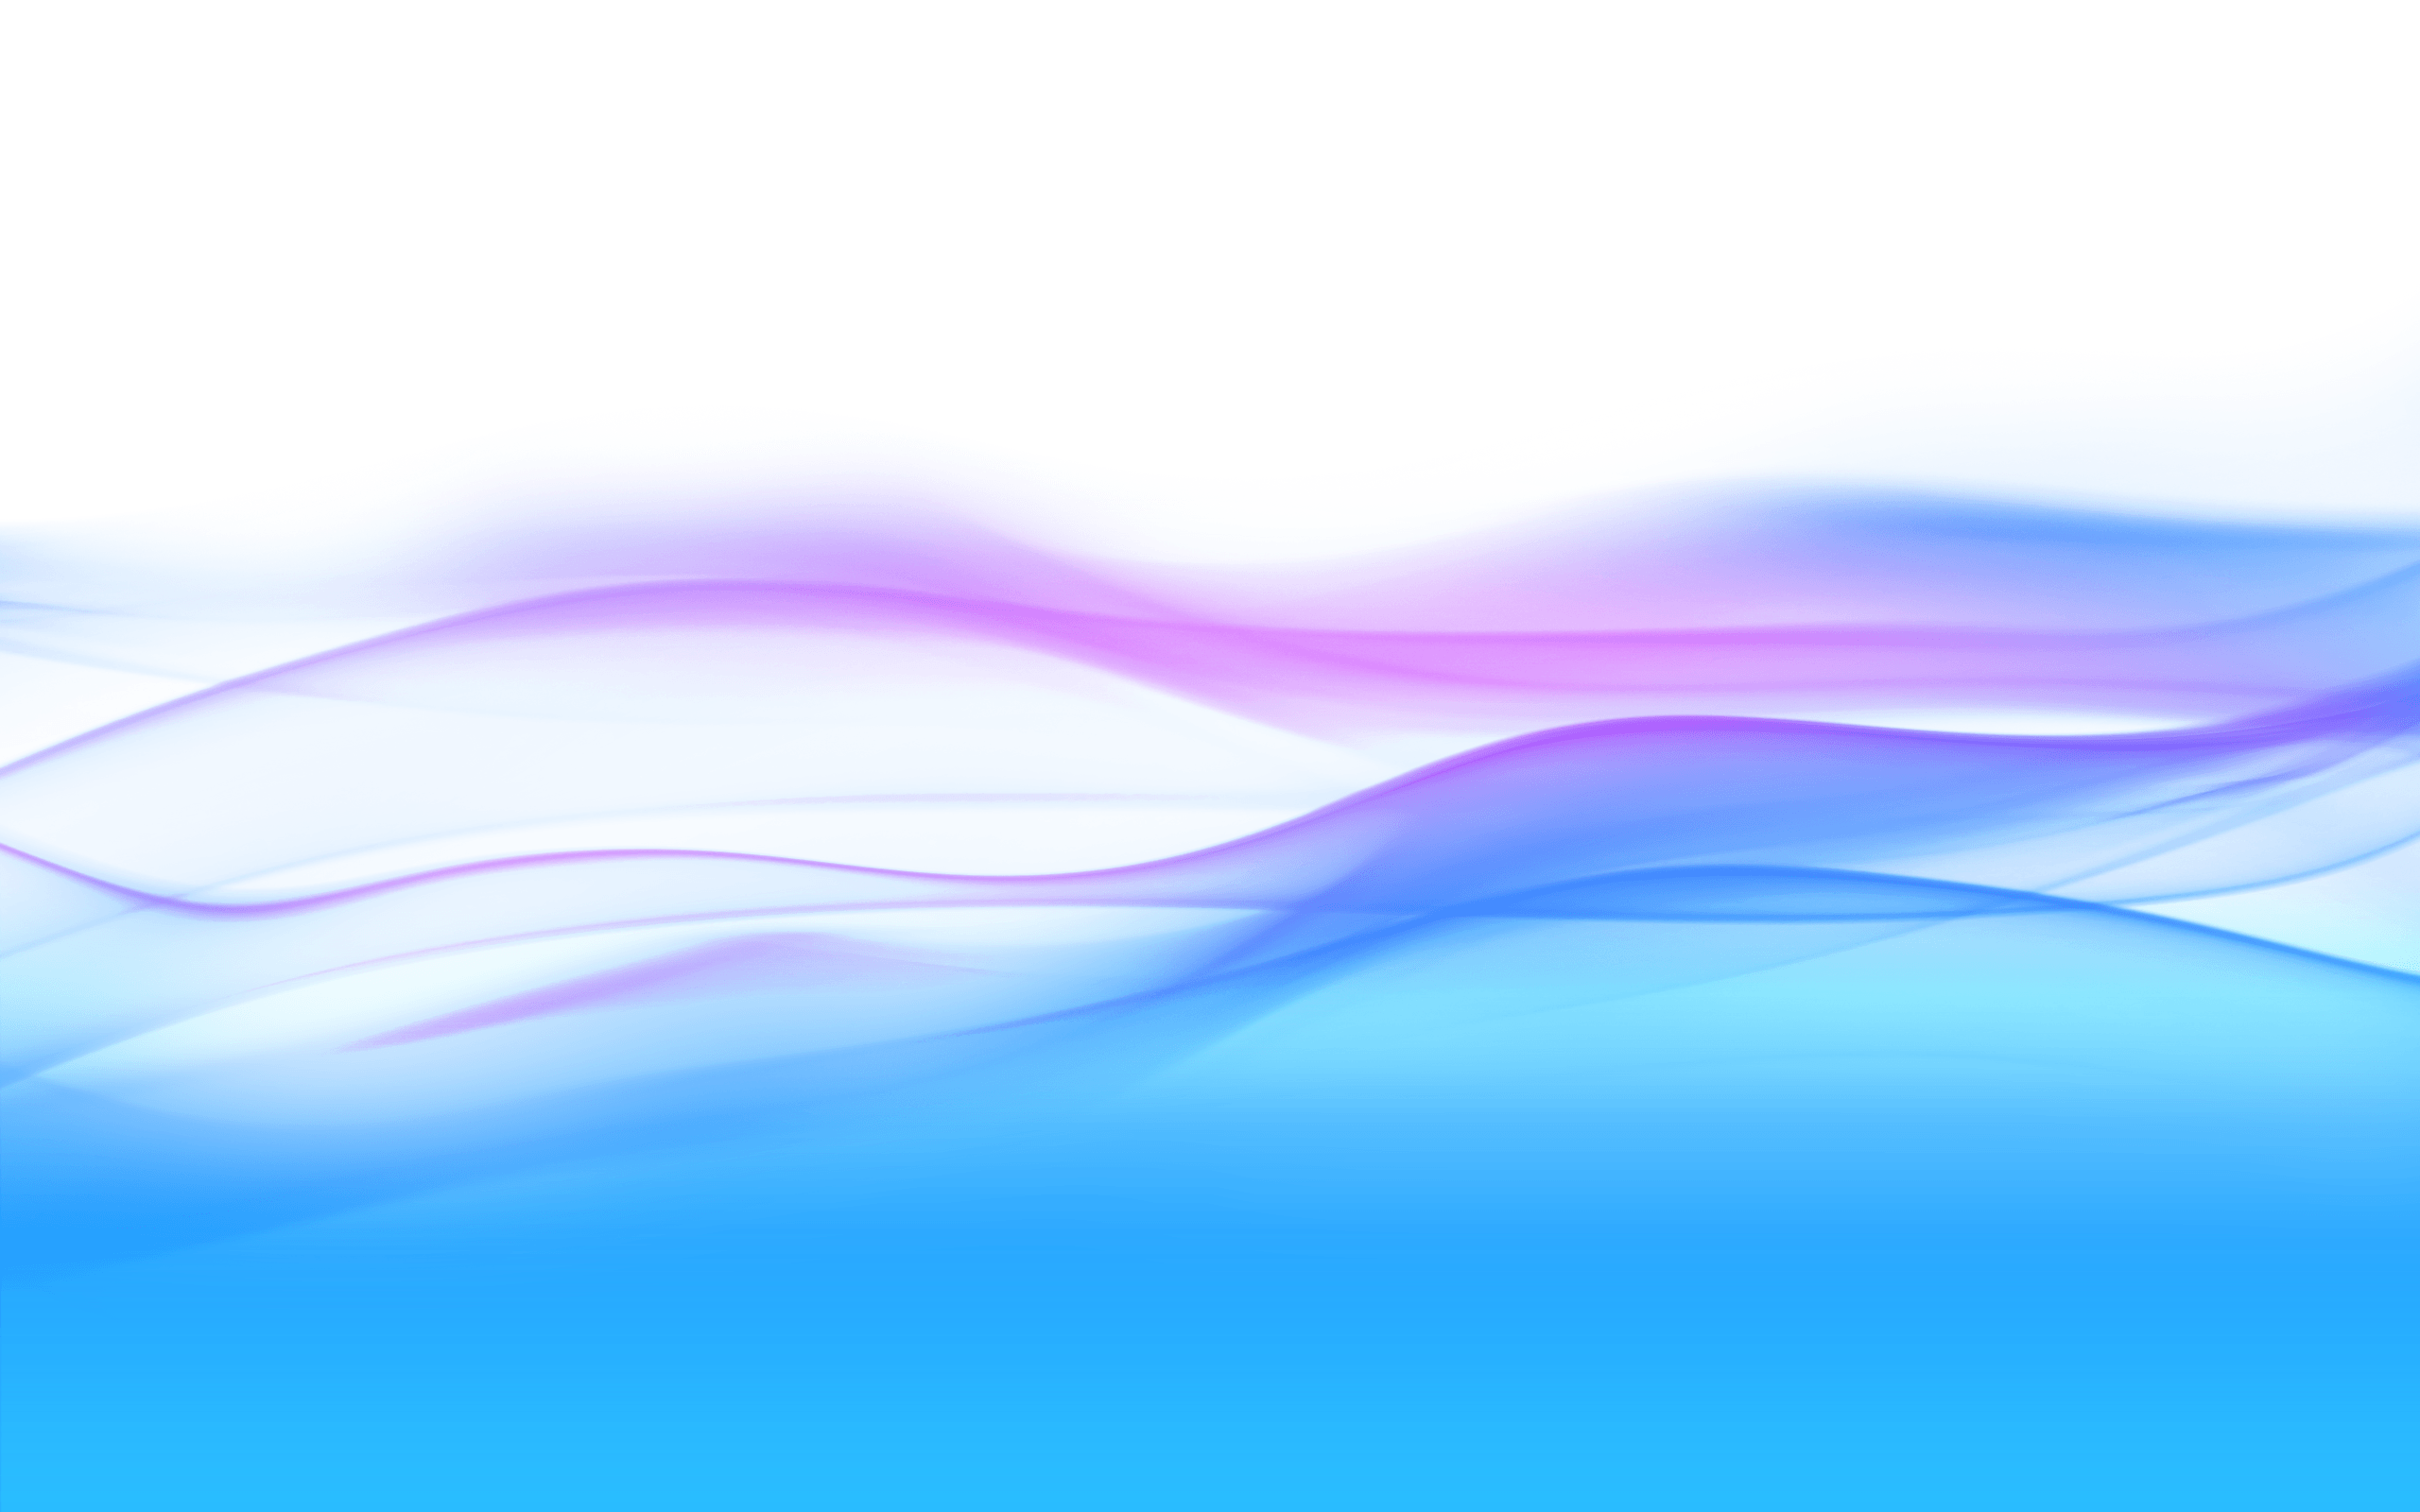 blue line wave background - photo #44